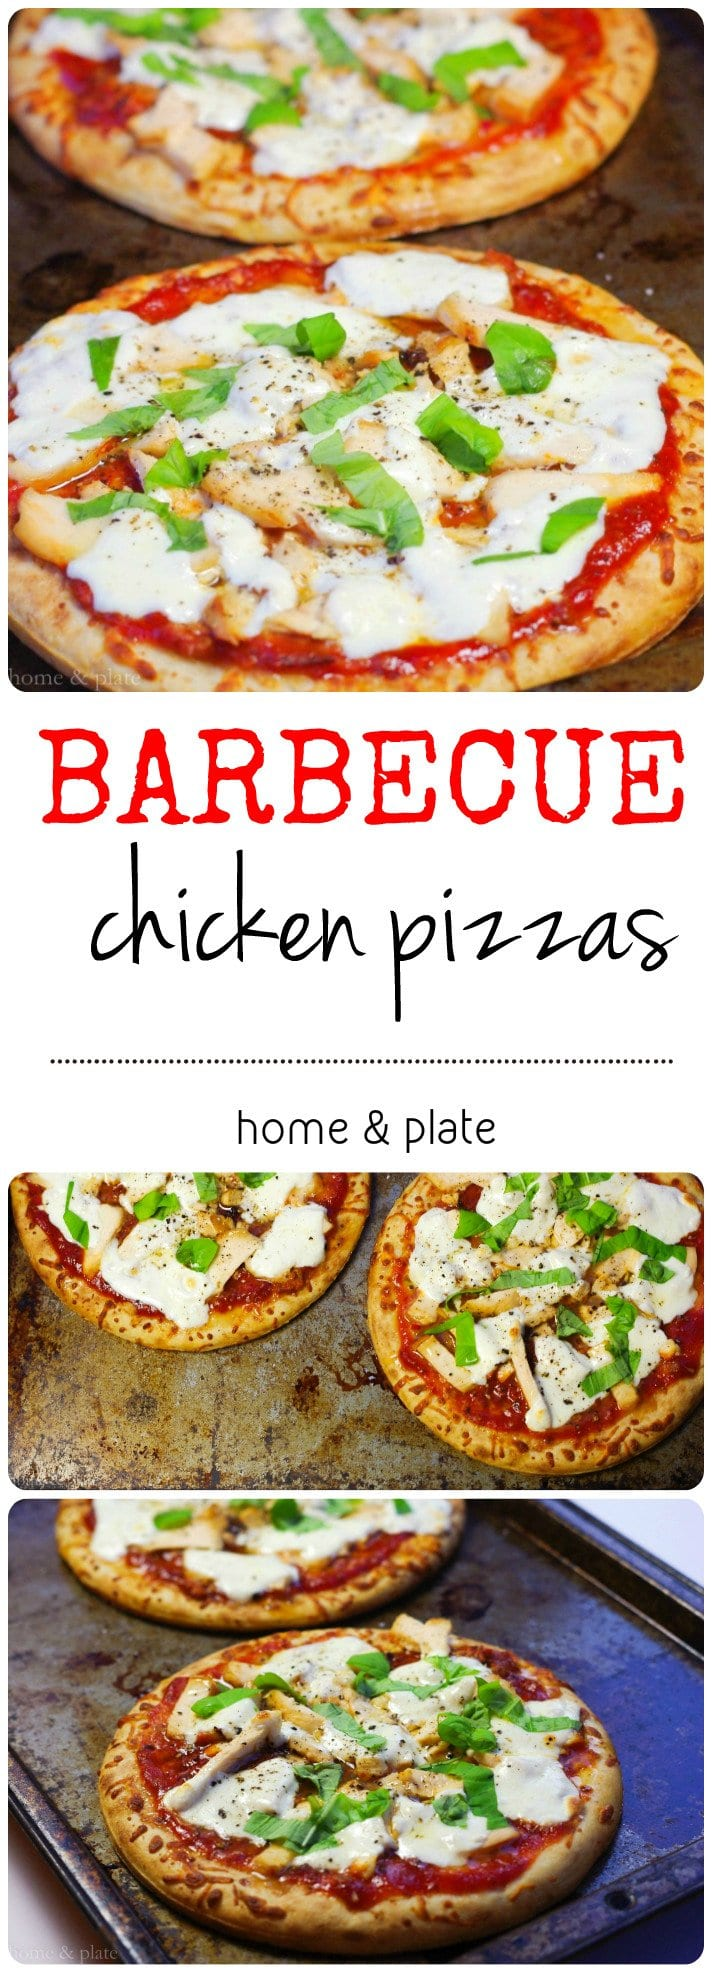 Individual Barbecue Chicken Pizzas | Home & Plate | www.homeandplate.com | Leftover barbecuedchicken paired with sweet and spicybarbecue sauce with fresh mozzarella cheese – Yum